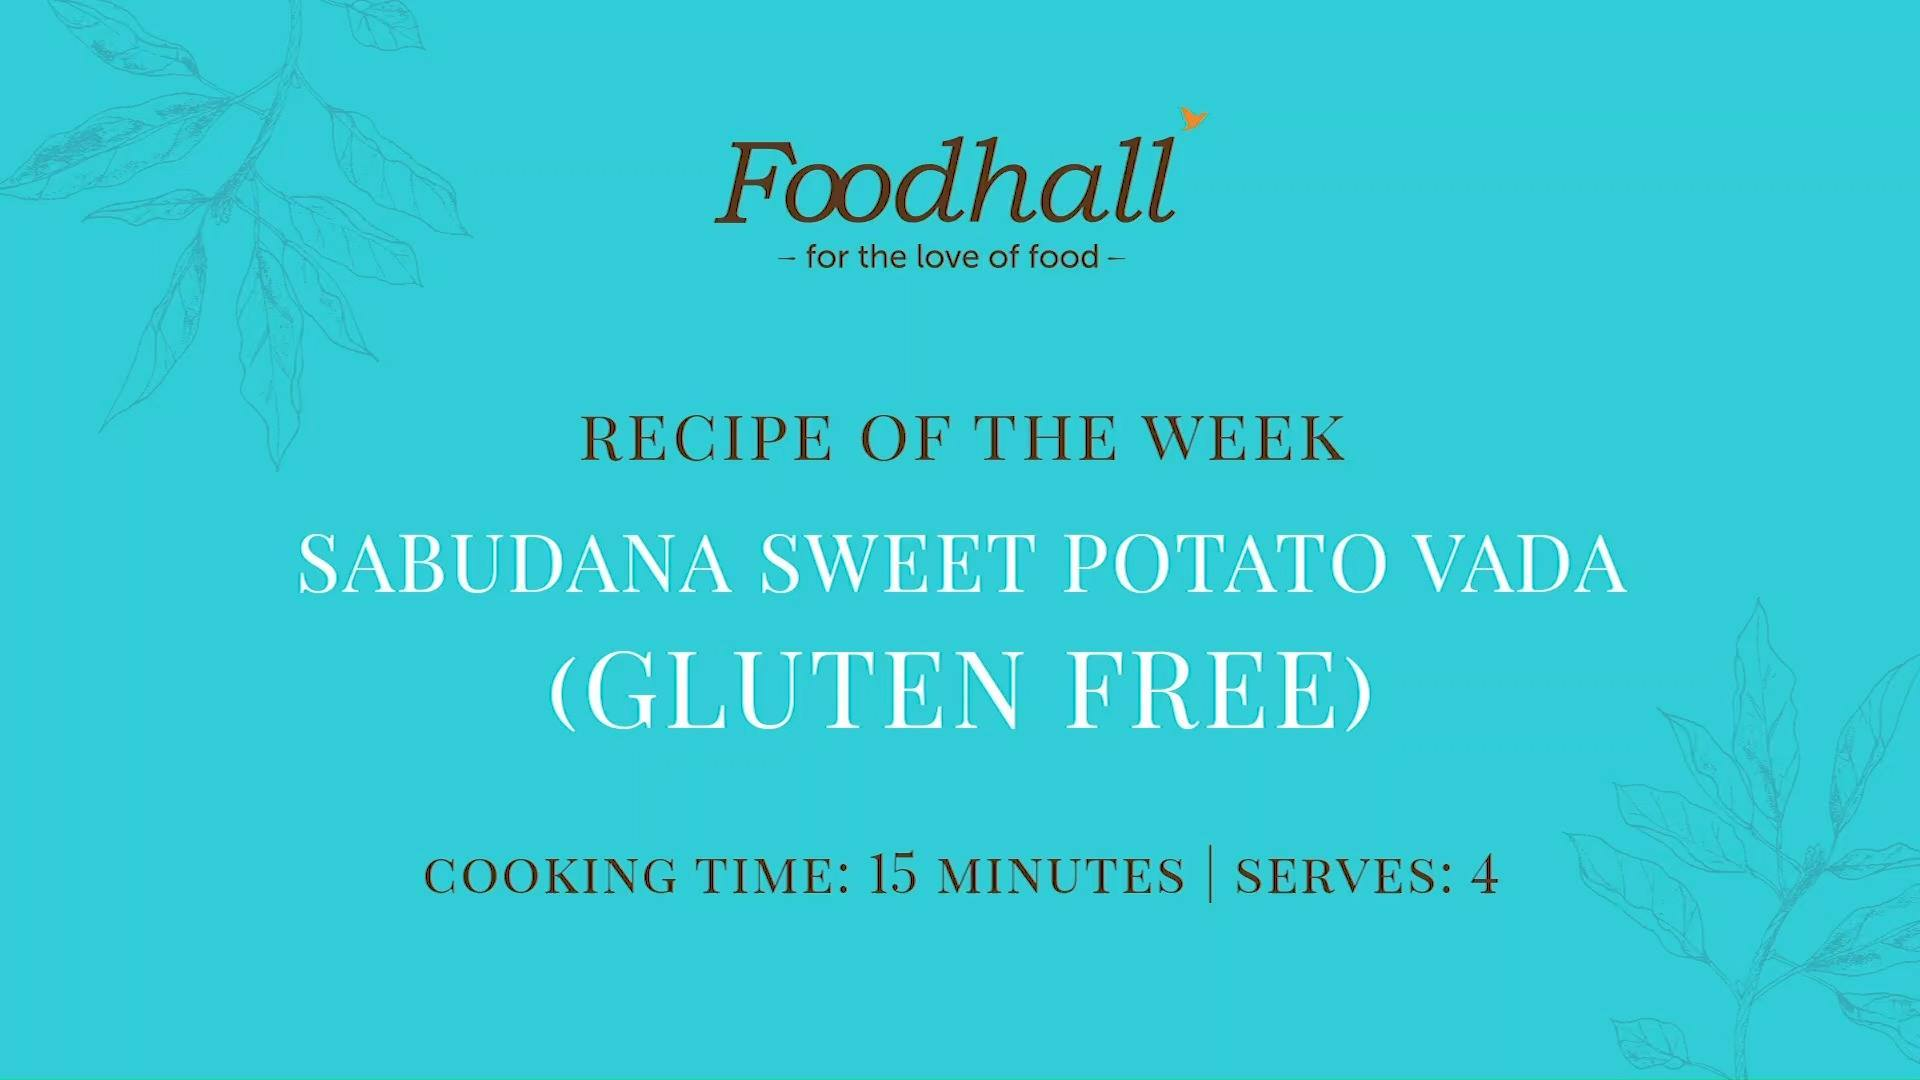 #RecipeoftheWeek: Sabudana Sweet Potato Vada.  Our recipe this week spotlights #sabudana – the tapioca pearls which are a staple during #Navratri, cropping up in snacks such as Sabudana Vada which can be eaten during fasts.  We've used sweet potato for a guilt-free, healthier twist to the recipe – not to mention, it adds a soft flavour and a nutritious boost too!  #ForTheLoveofFood #FoodhallIndia #SabudanaVada #NavratriFasting #NavratriFast #RecipeShare #IndianRecipes #HealthyRecipes #HealthyLiving